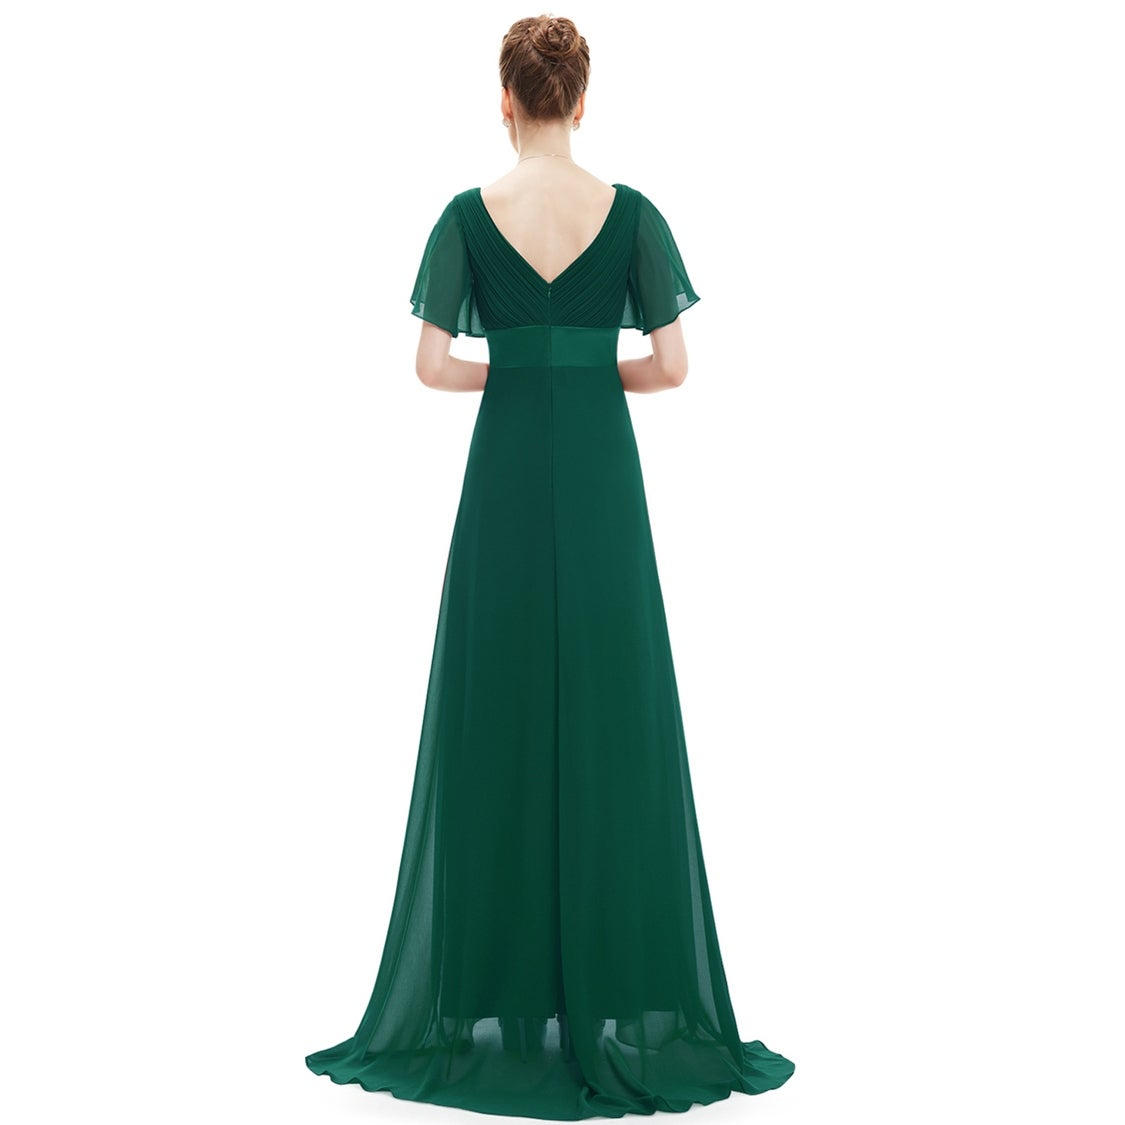 Shop Ever-Pretty Womens Glamorous double V-neck Evening Dress 09890 - On  Sale - Free Shipping Today - Overstock - 25724185 c4853a16e